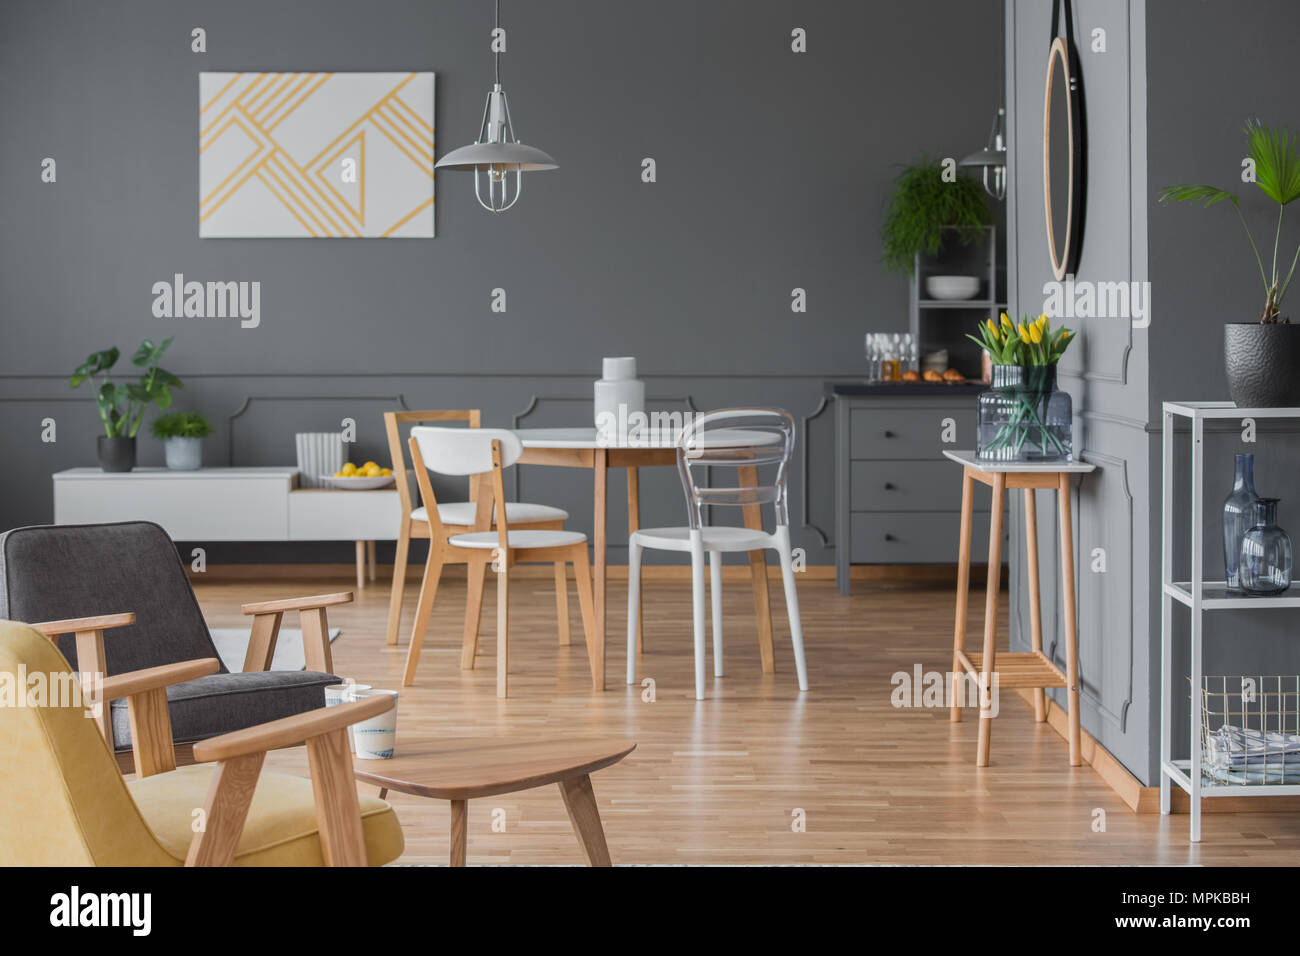 White chairs at dining table in grey apartment interior with yellow ...